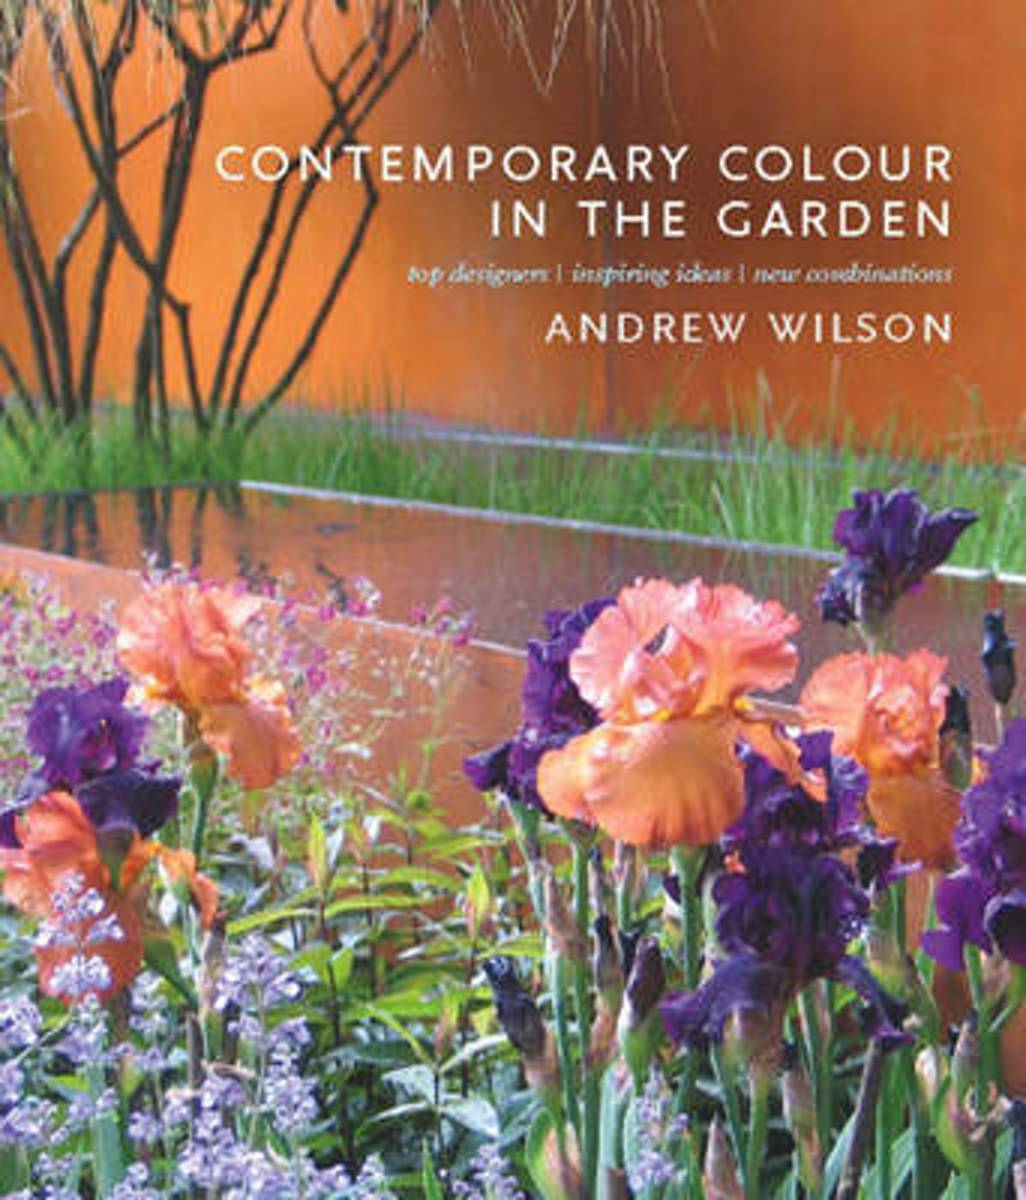 Contemporary Colour in the Garden